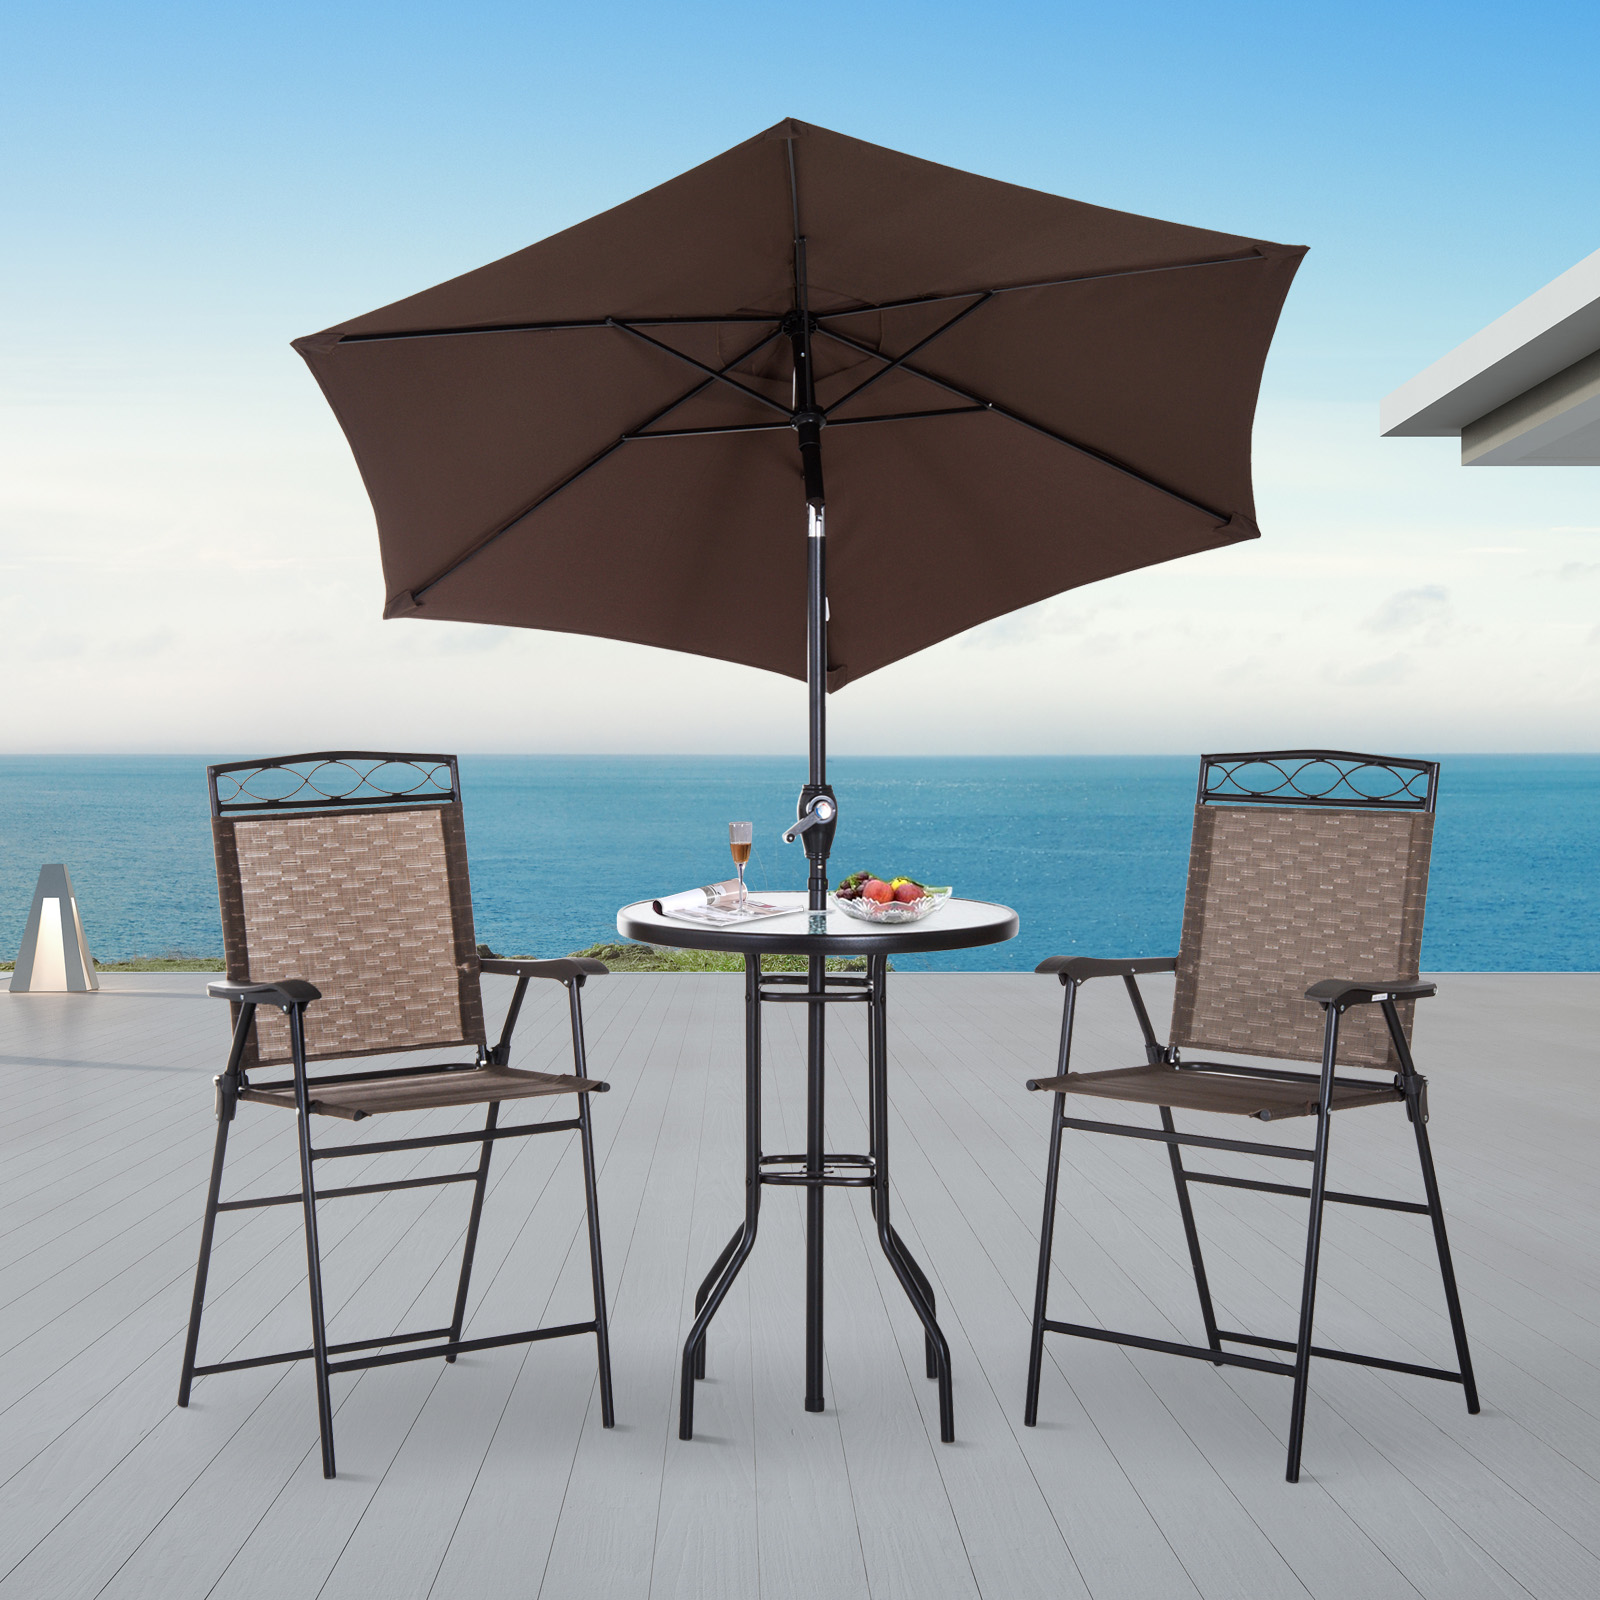 Outdoor Patio Furniture Dining Table Details About Outsunny 4pc Steel Folding Dining Table Set W Umbrella Outdoor Patio Furniture